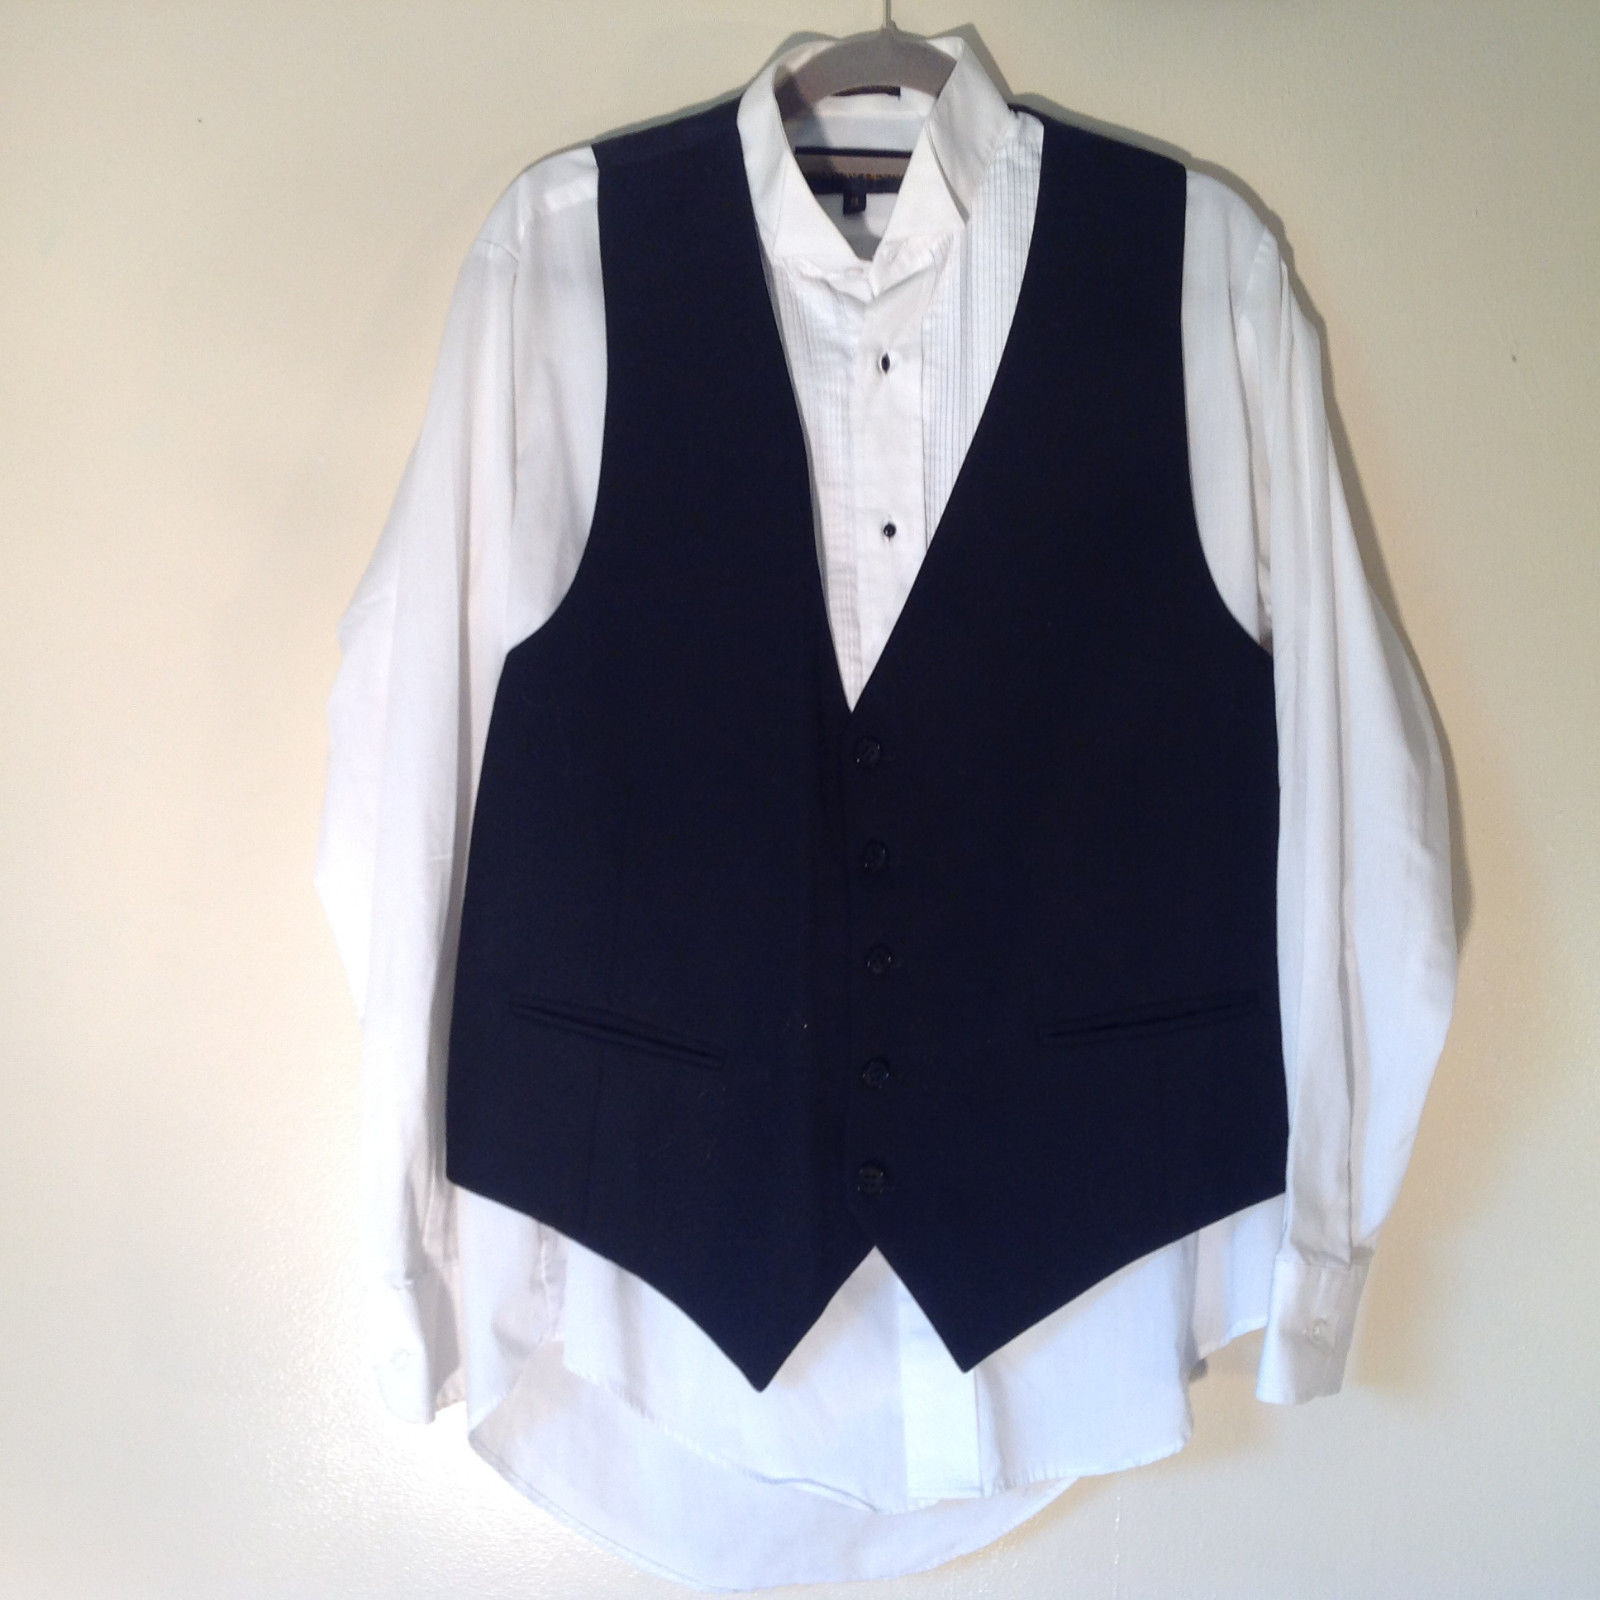 Giorgio Bissoni White Tux Shirt With Black Vest Size Small